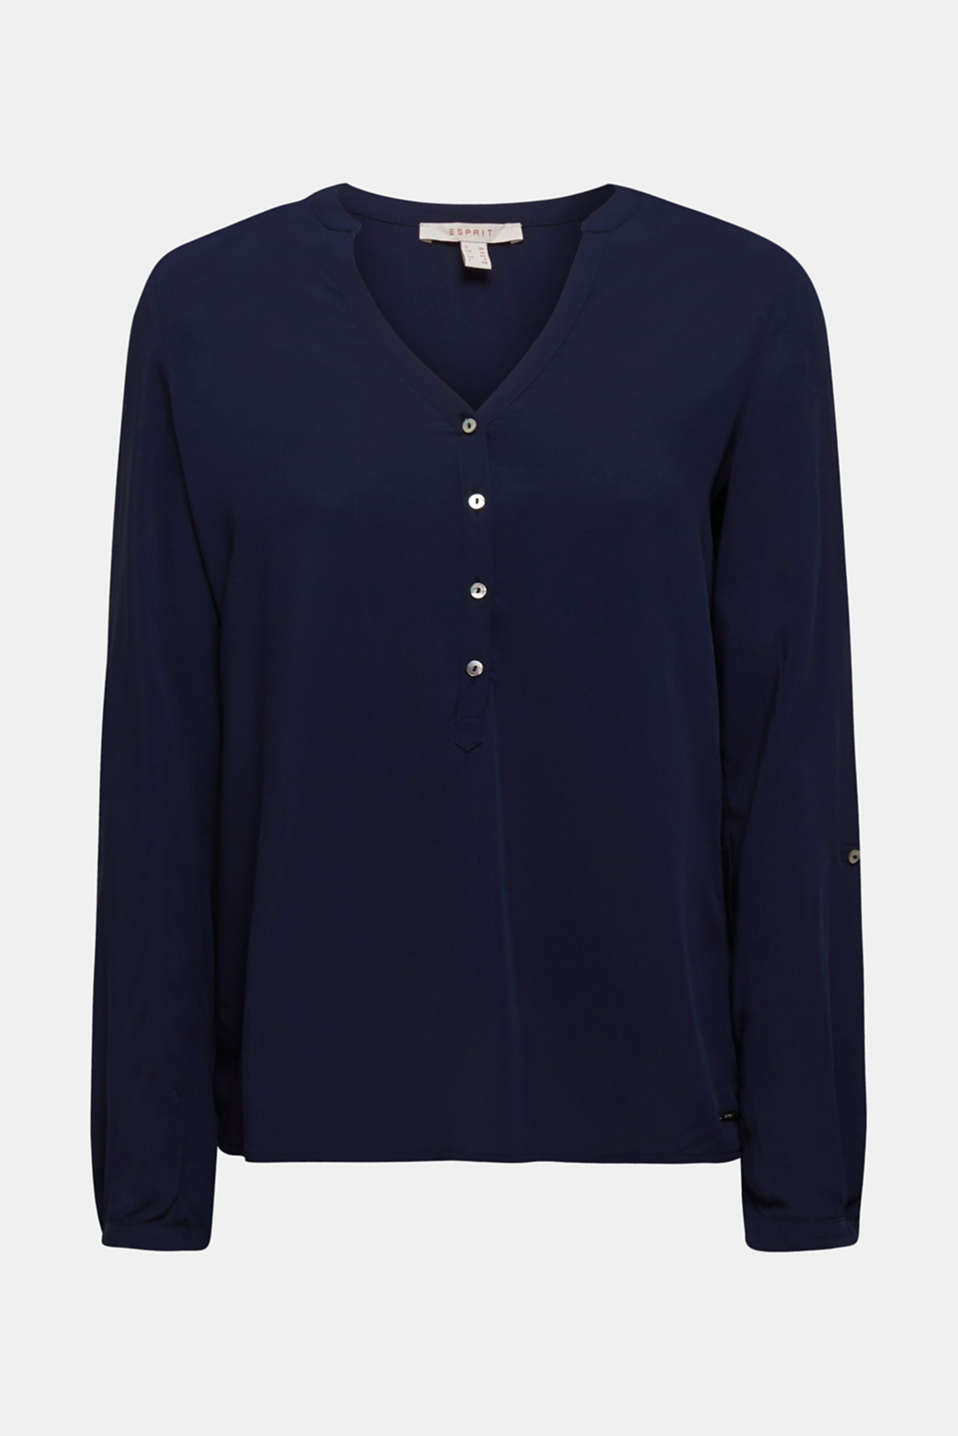 This casual Henley blouse with adjustable turn-up sleeves is a perfect essential piece!